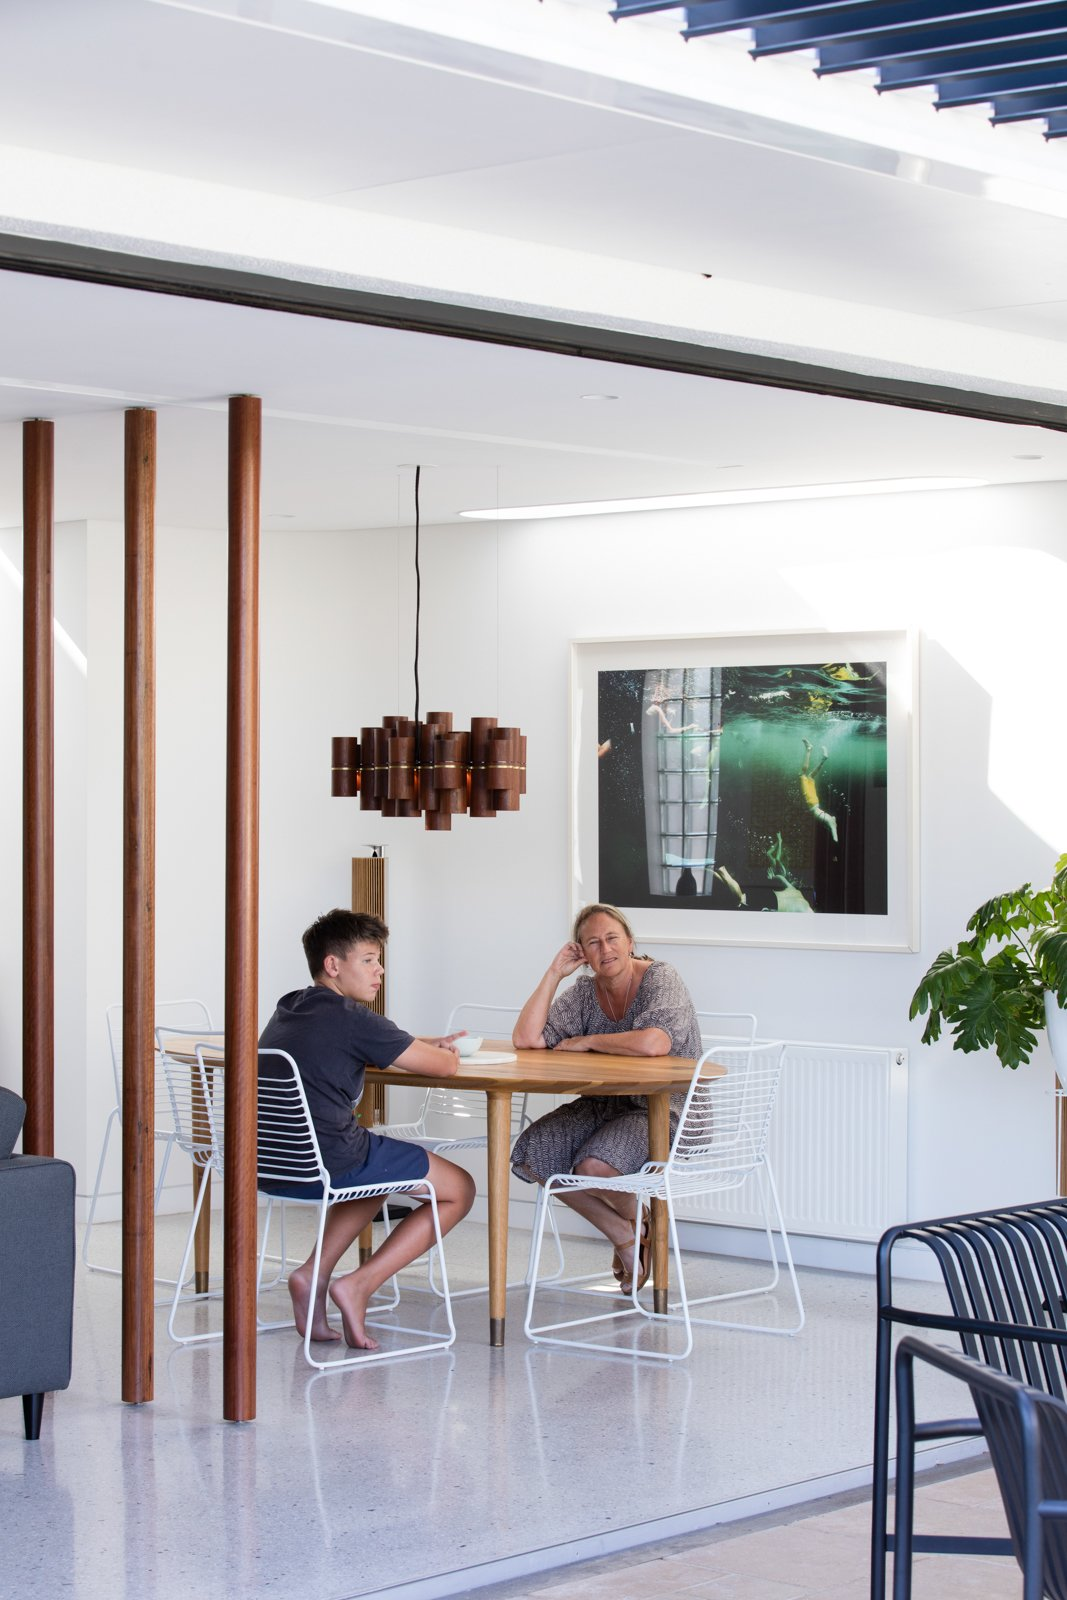 Tagged: Dining Room, Chair, Table, and Pendant Lighting. A Heritage Art Deco House in Australia Gets a Modern Update - Photo 11 of 12